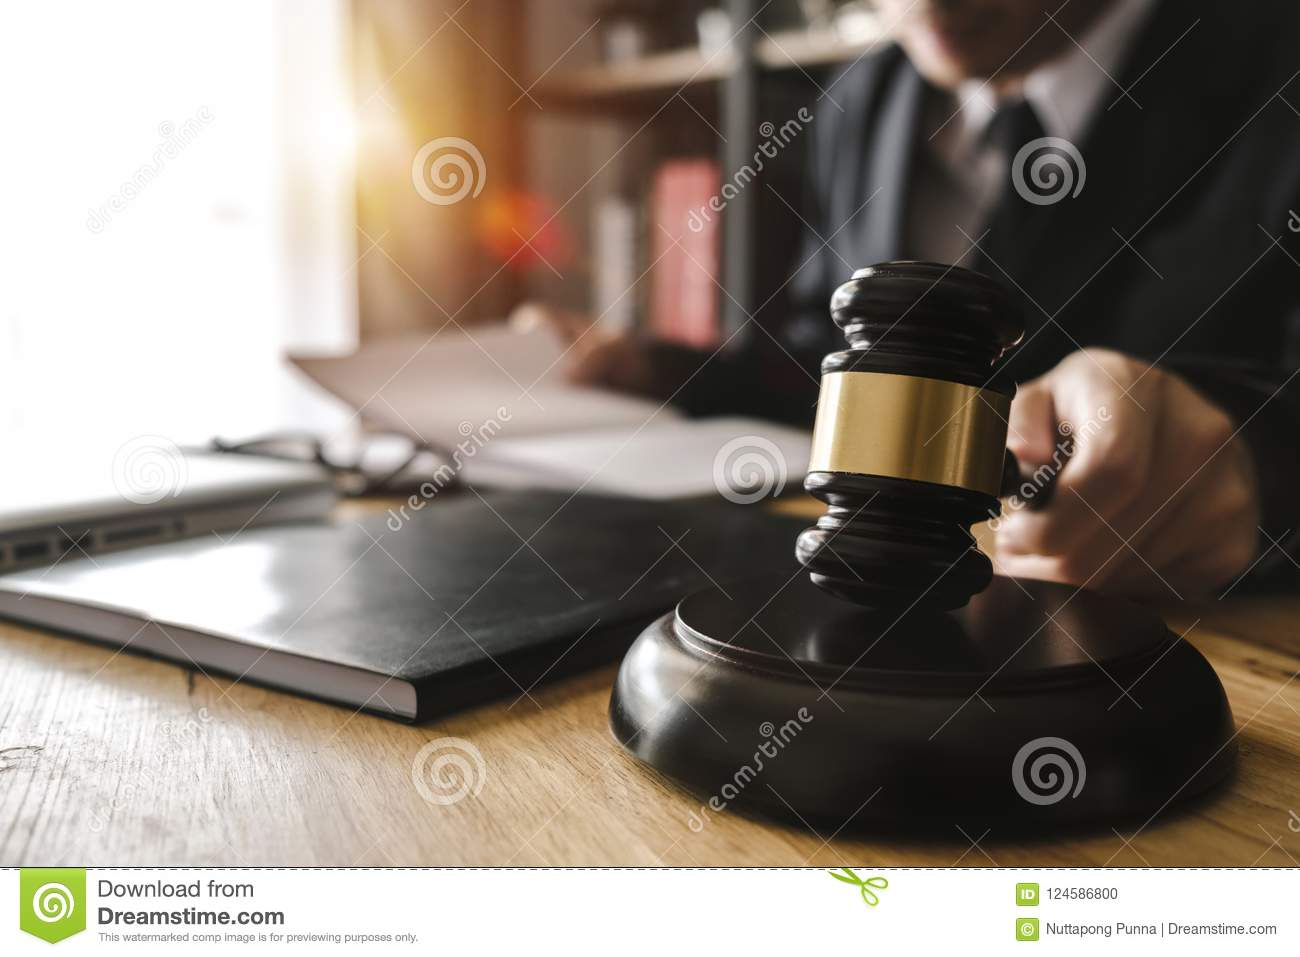 Justice and law concept.Male judge in a courtroom with the gavel,working with,digital tablet